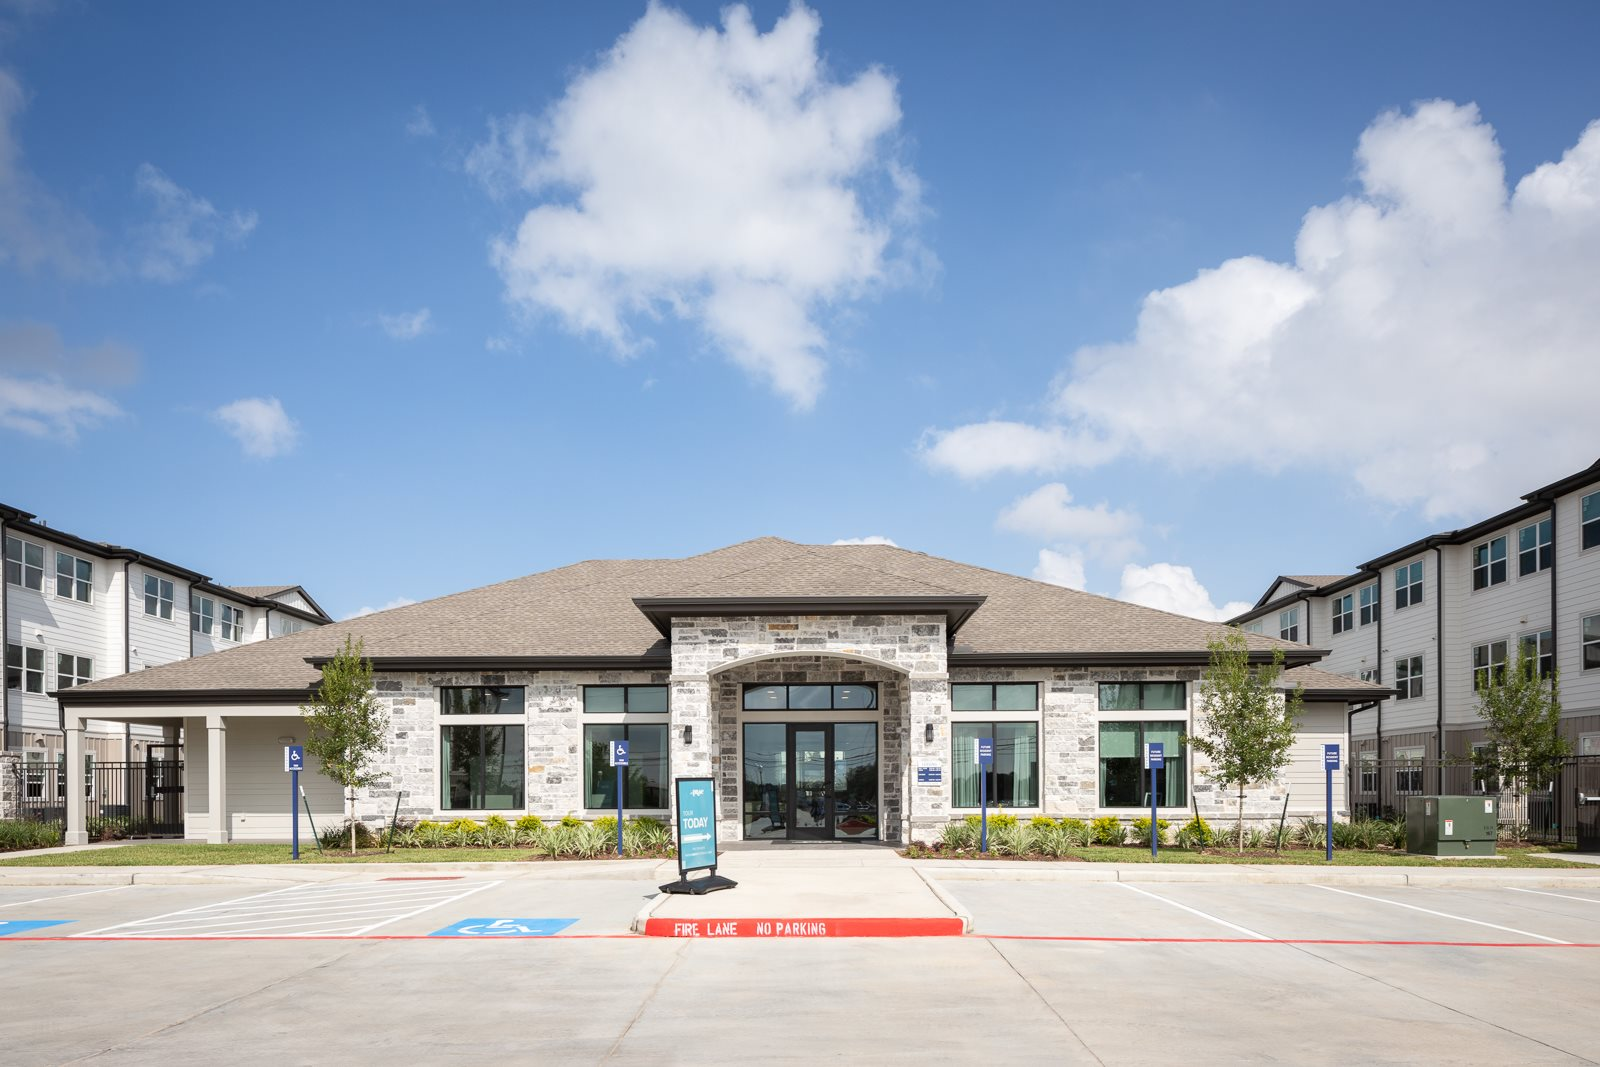 exterior leasing office